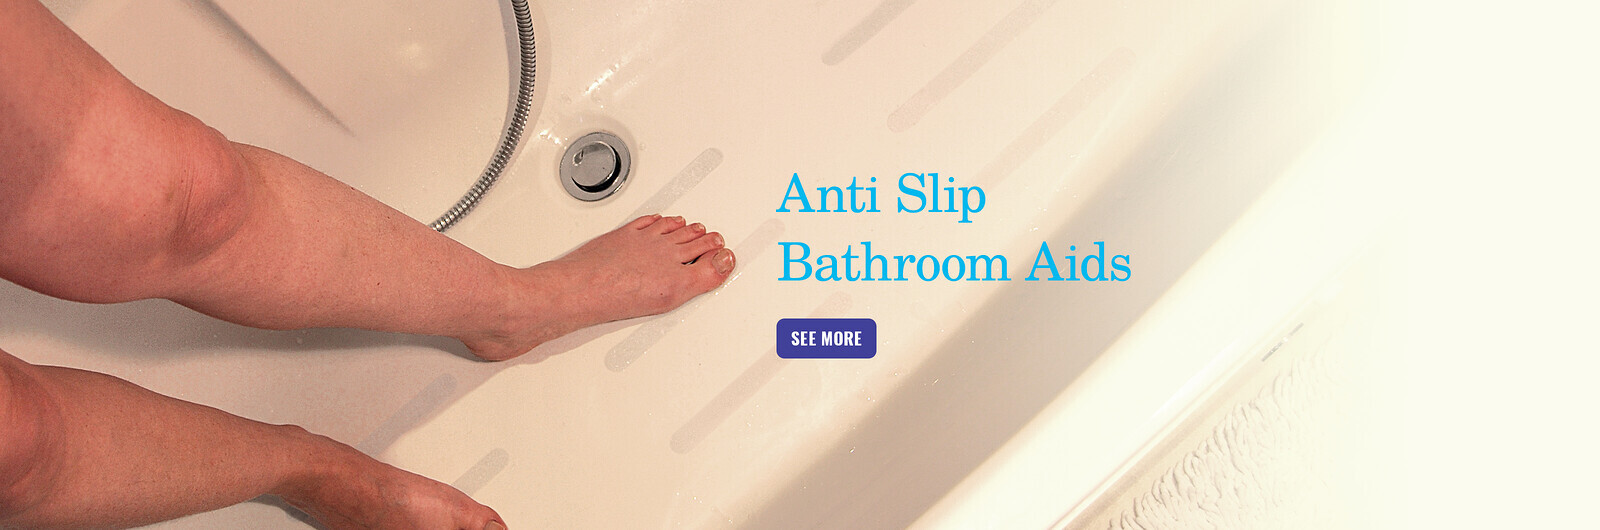 Anti Slip Bathroom Aids